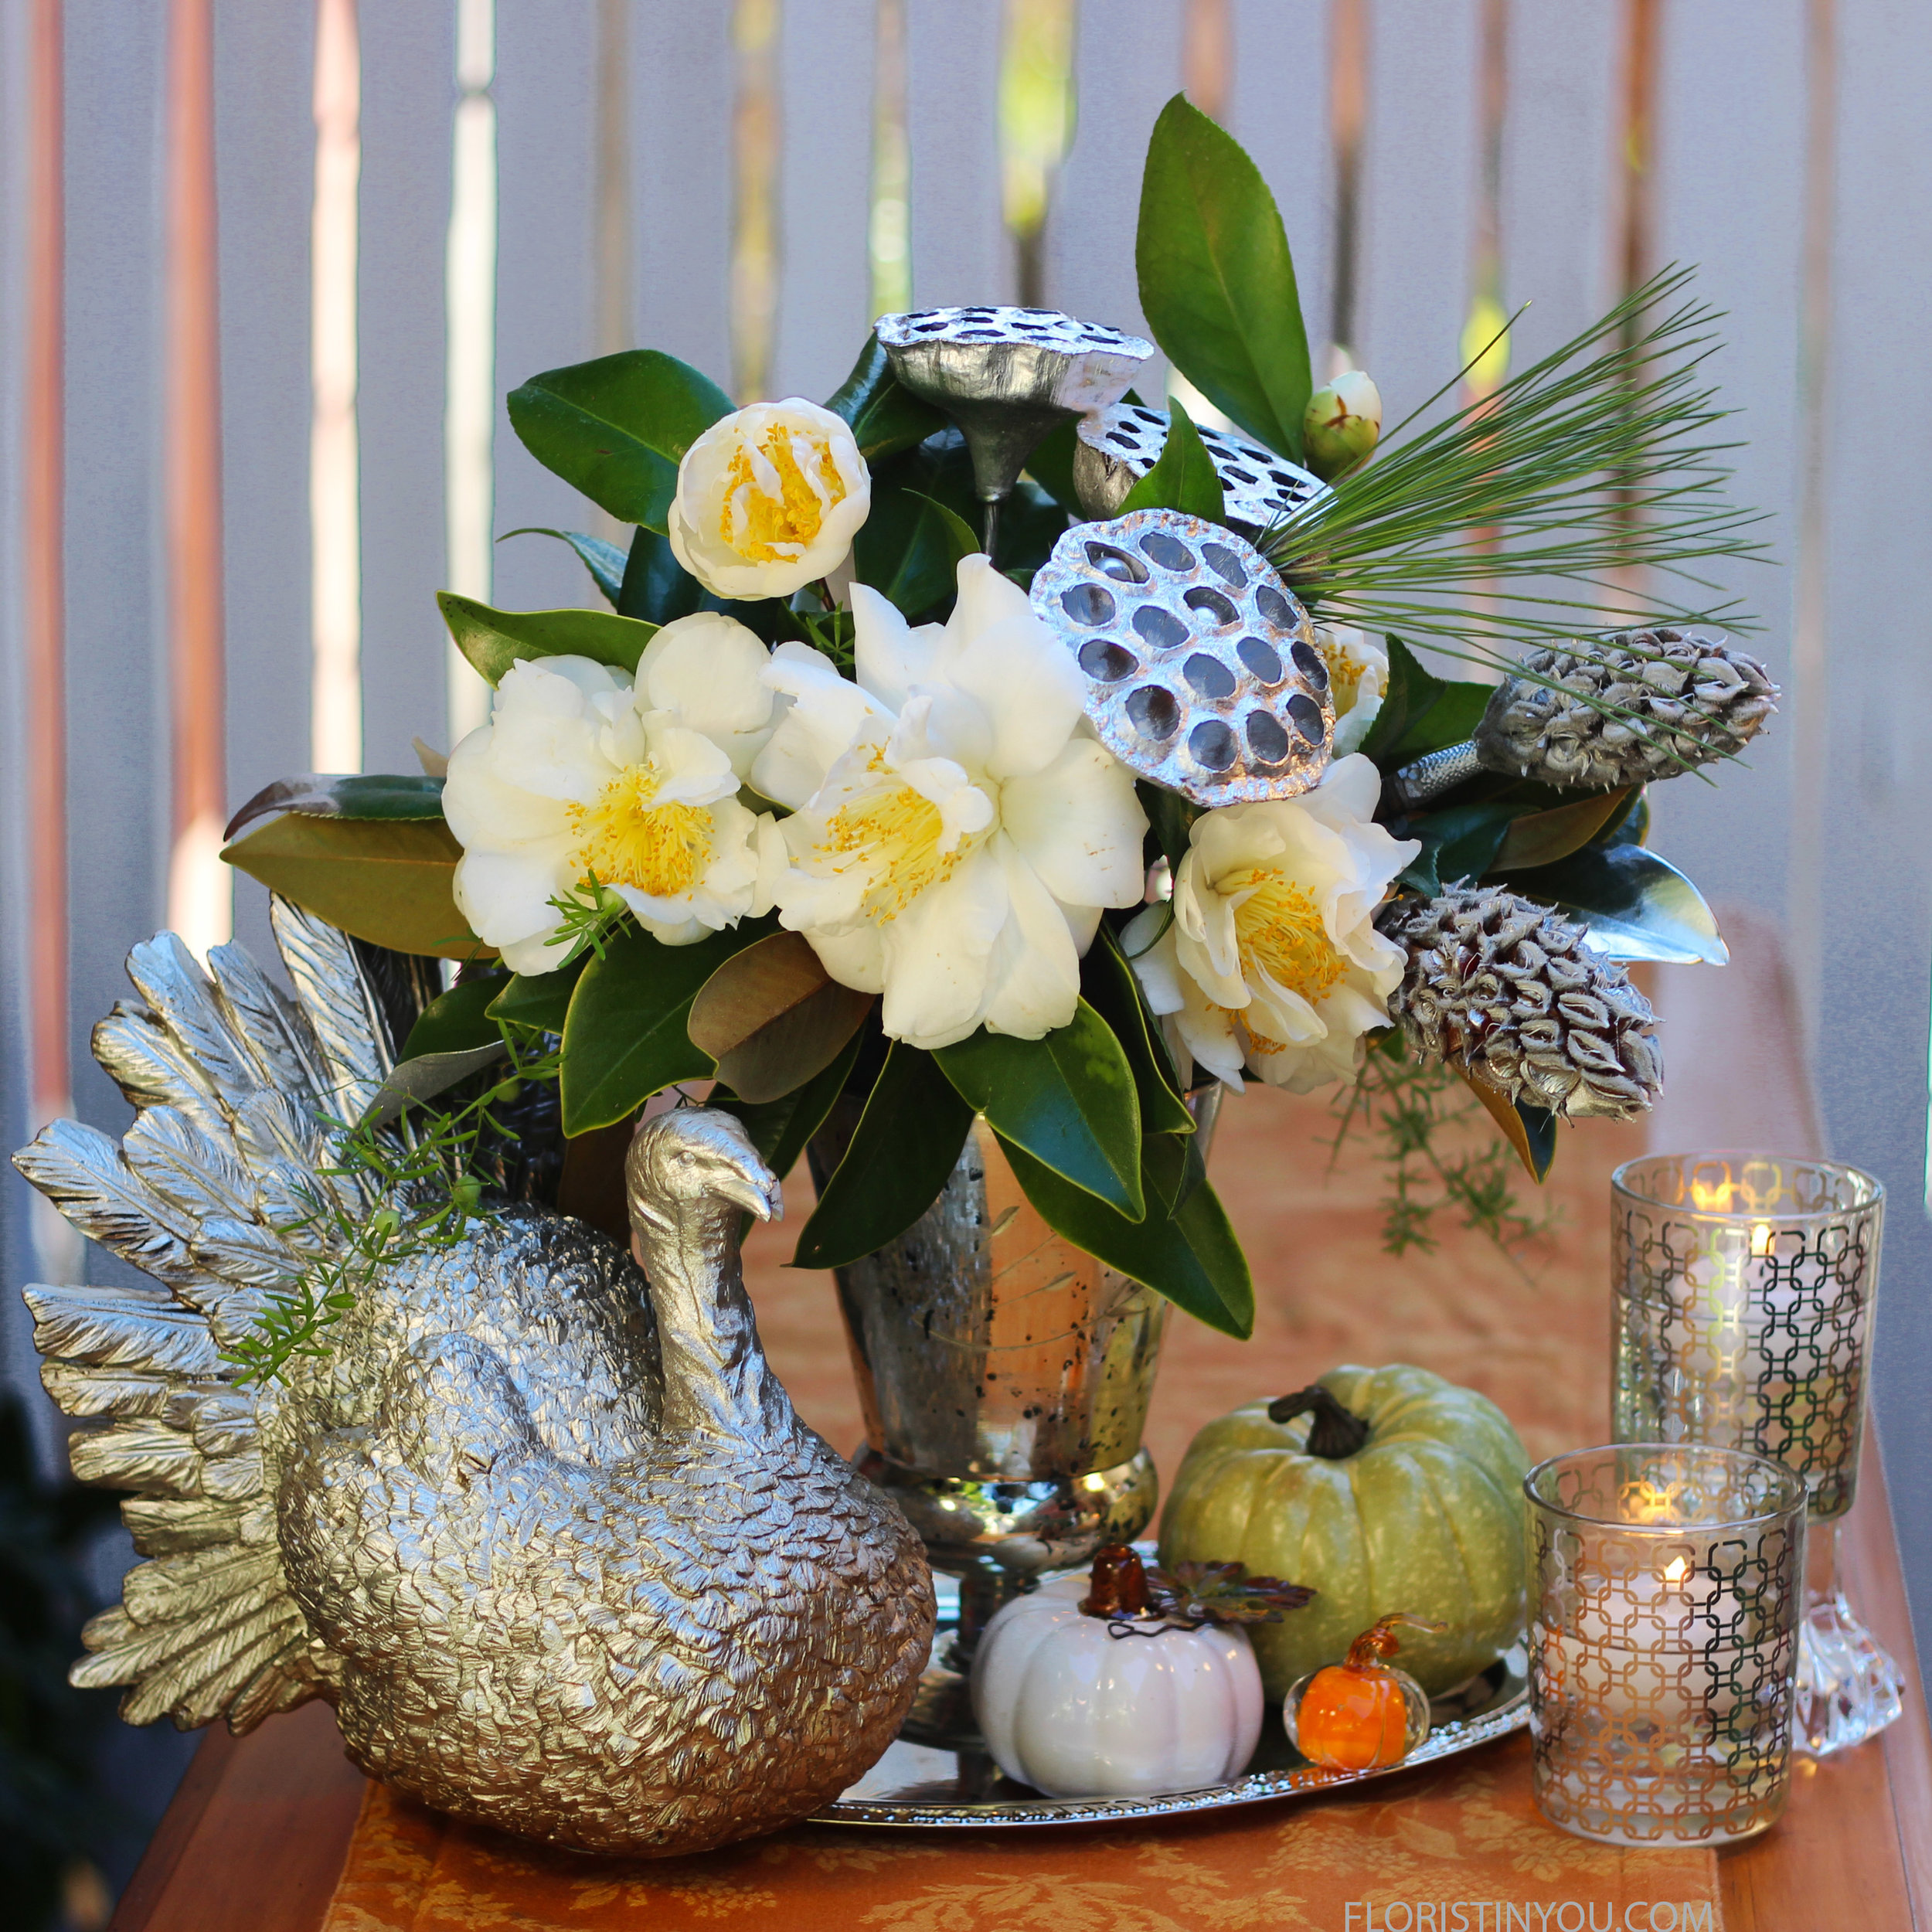 Add your silver turkey, pumpkins, tray,and silver patterned votives for your table setting.